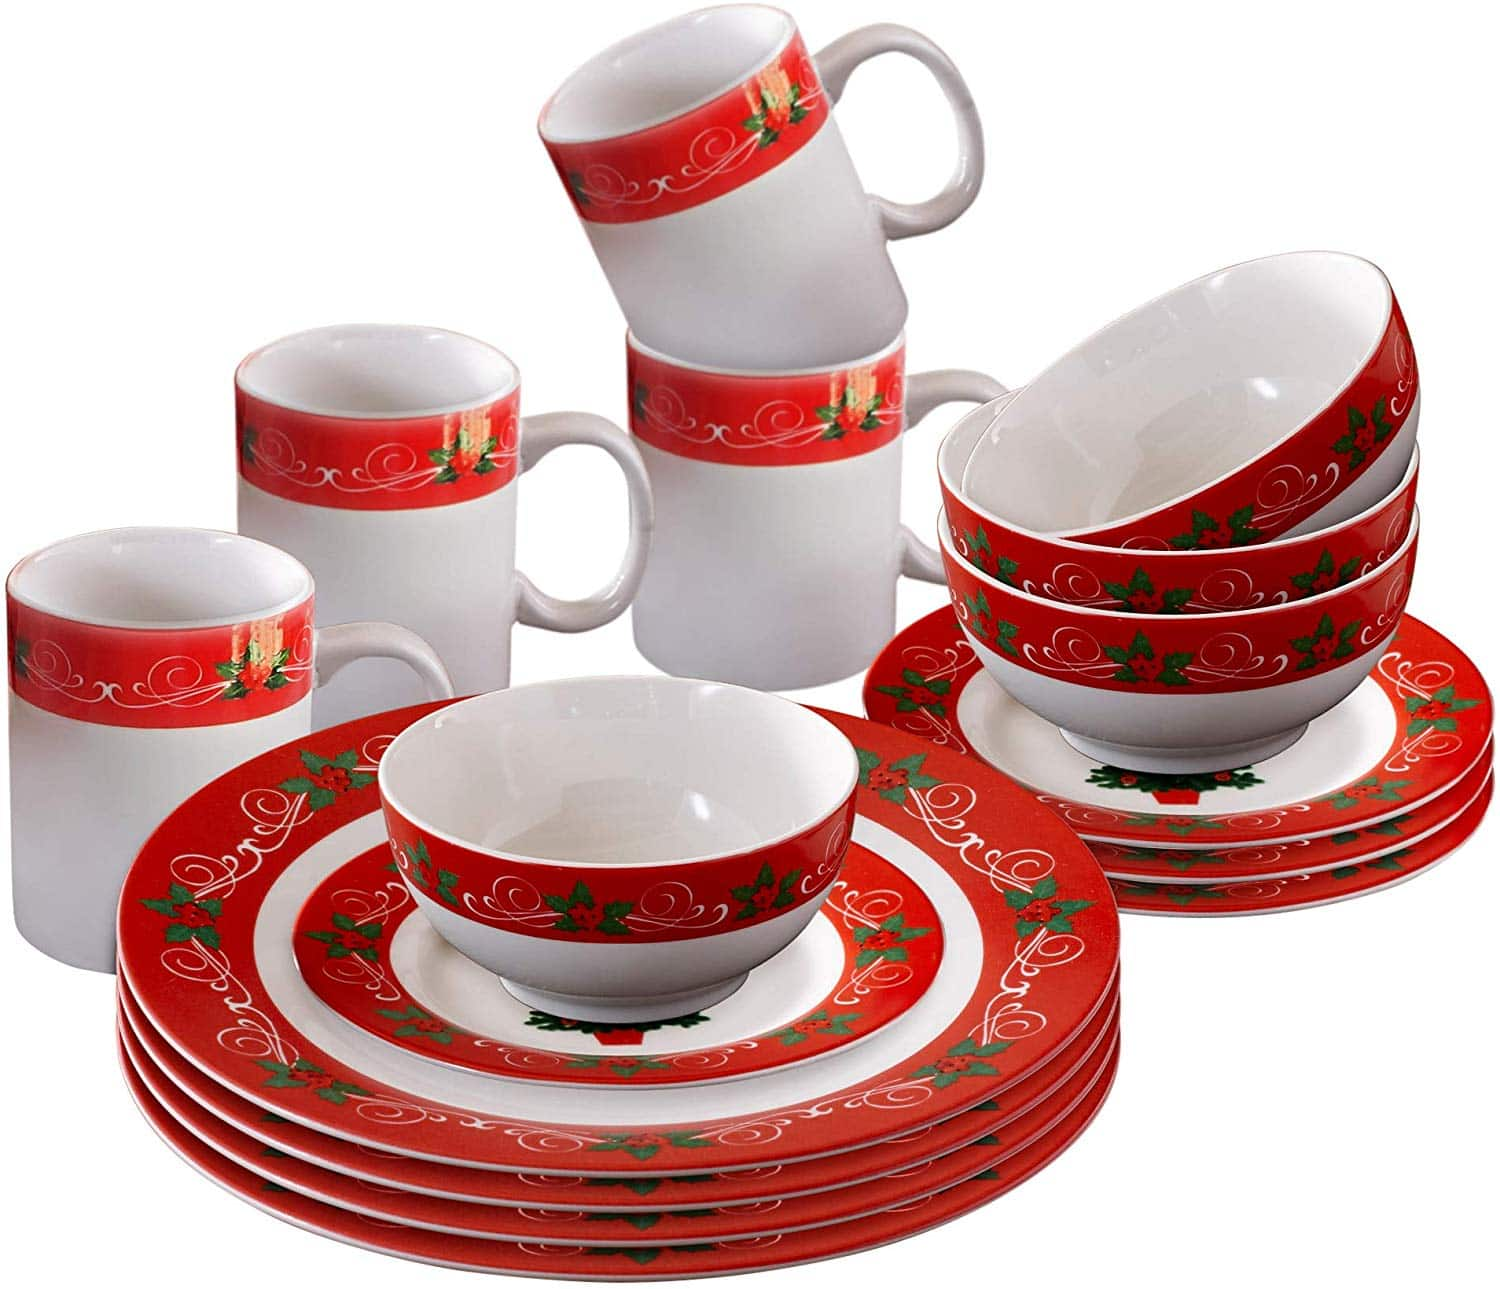 American Atelier 16-Piece Porcelain/Earthenware Dinnerware Sets from $25 at Home Depot + Free Store Pickup